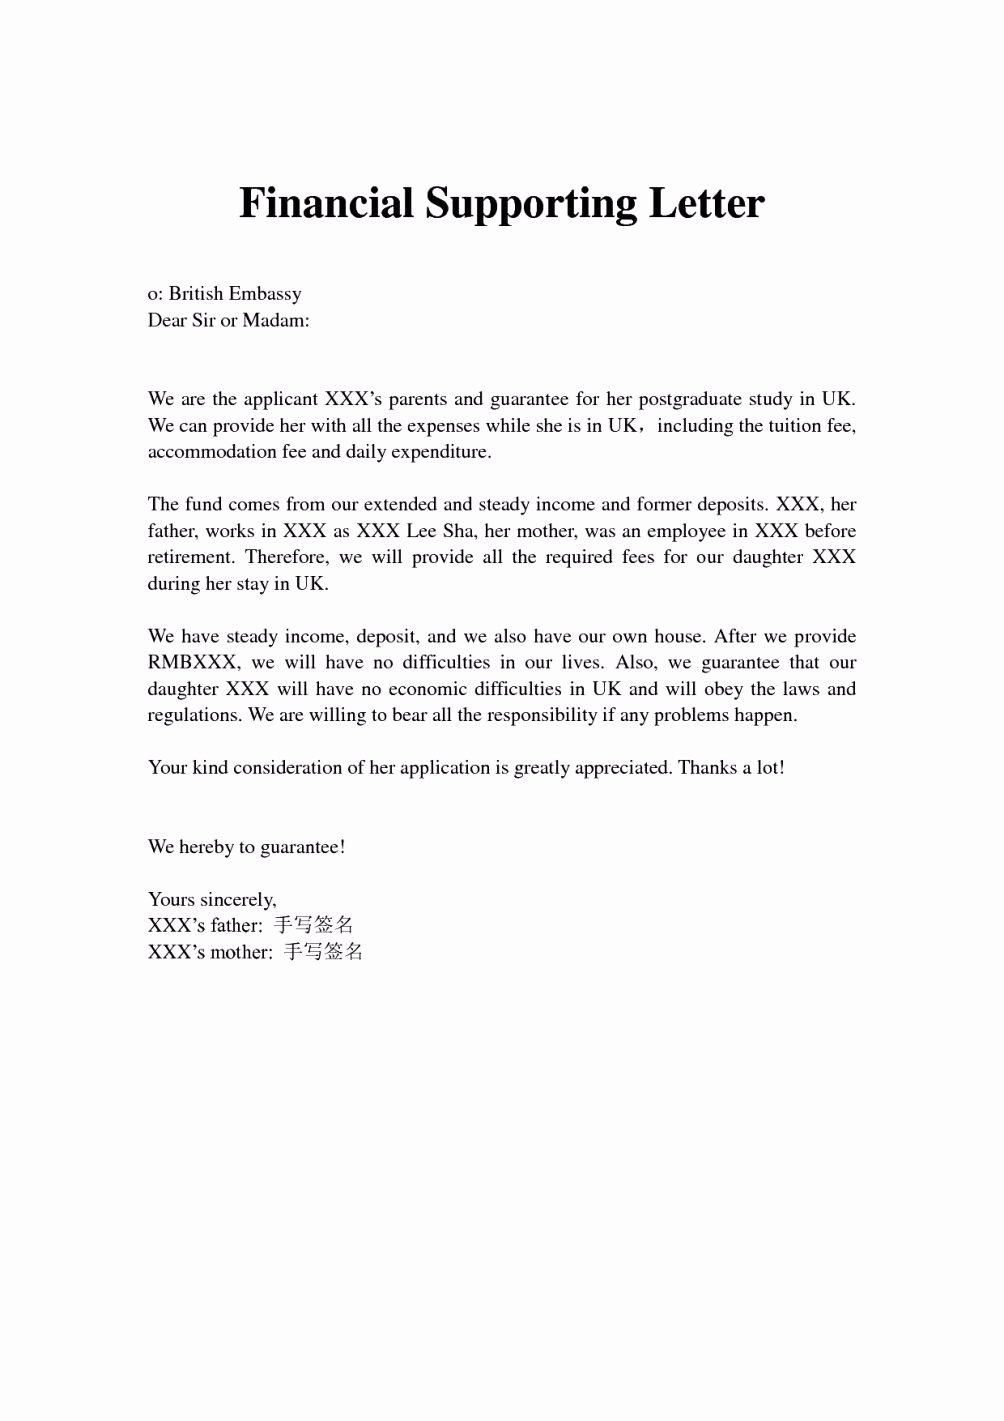 Sample Letter Of Financial Support Elegant Financial Support Letter From Parents Letter